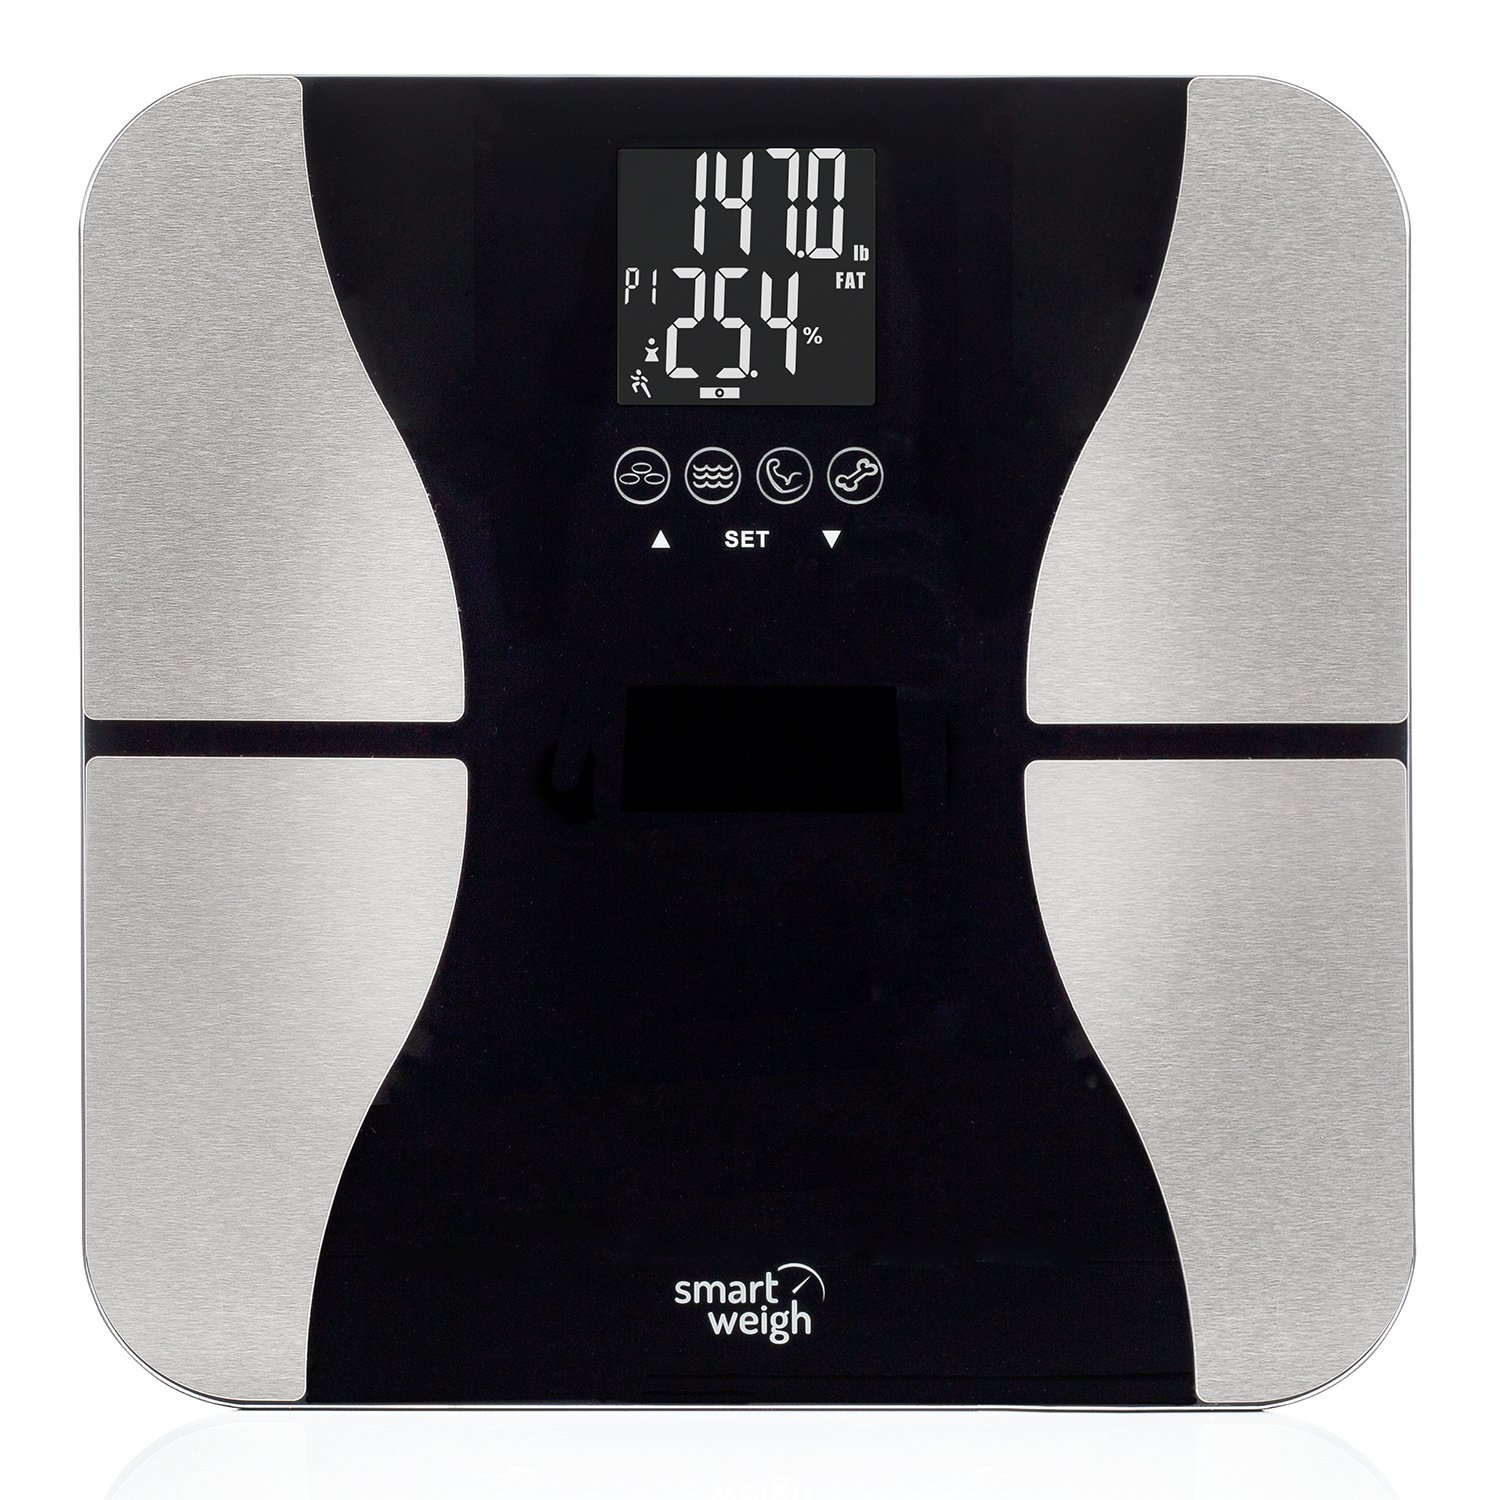 Smart Weigh Digital Bathroom BMI Body Fat Weight Scale, Tempered Glass, 440 pounds, Black SBS500